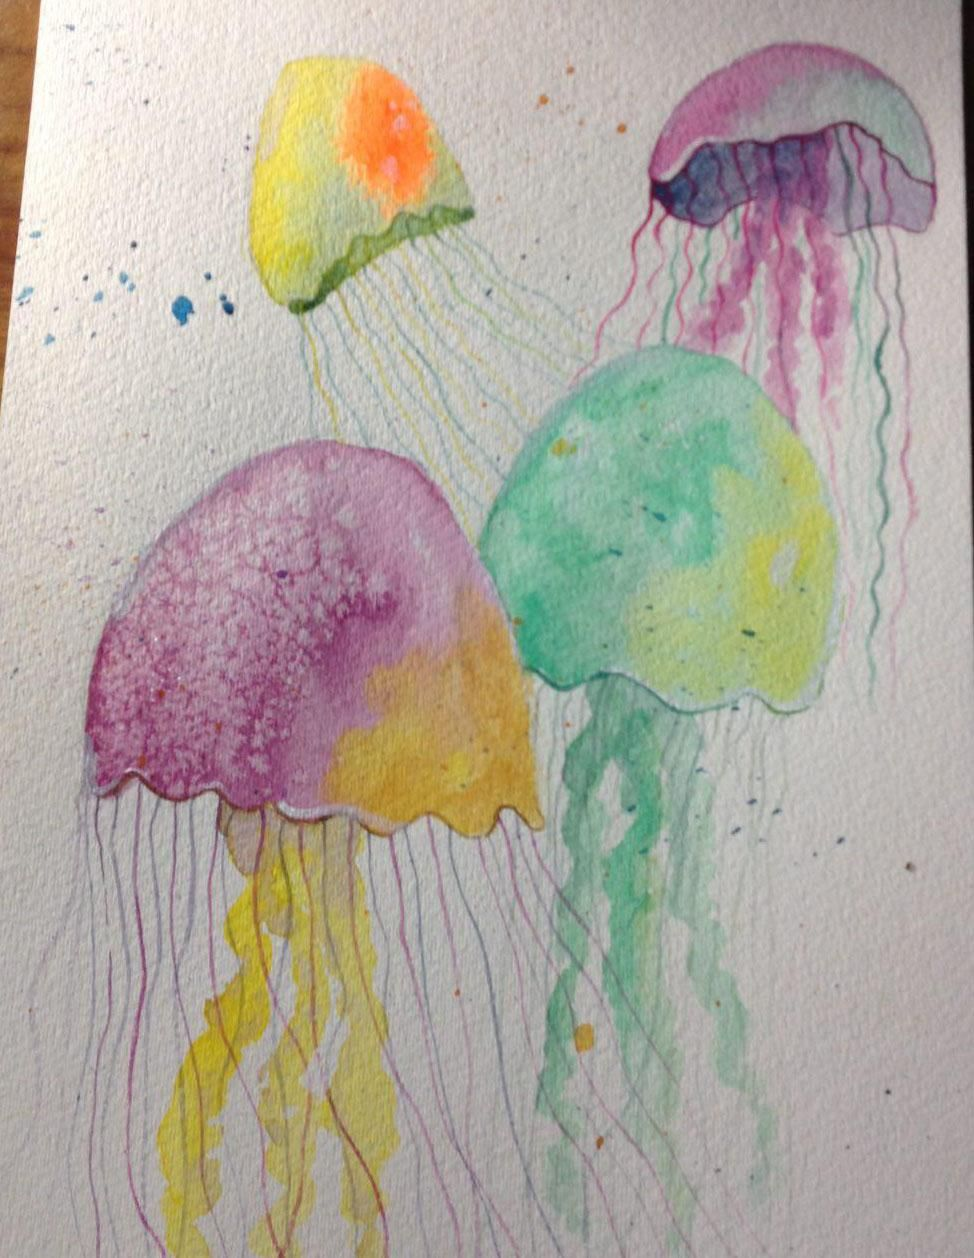 Monochrome girl, Jellyfish and Galaxy hair  - image 2 - student project